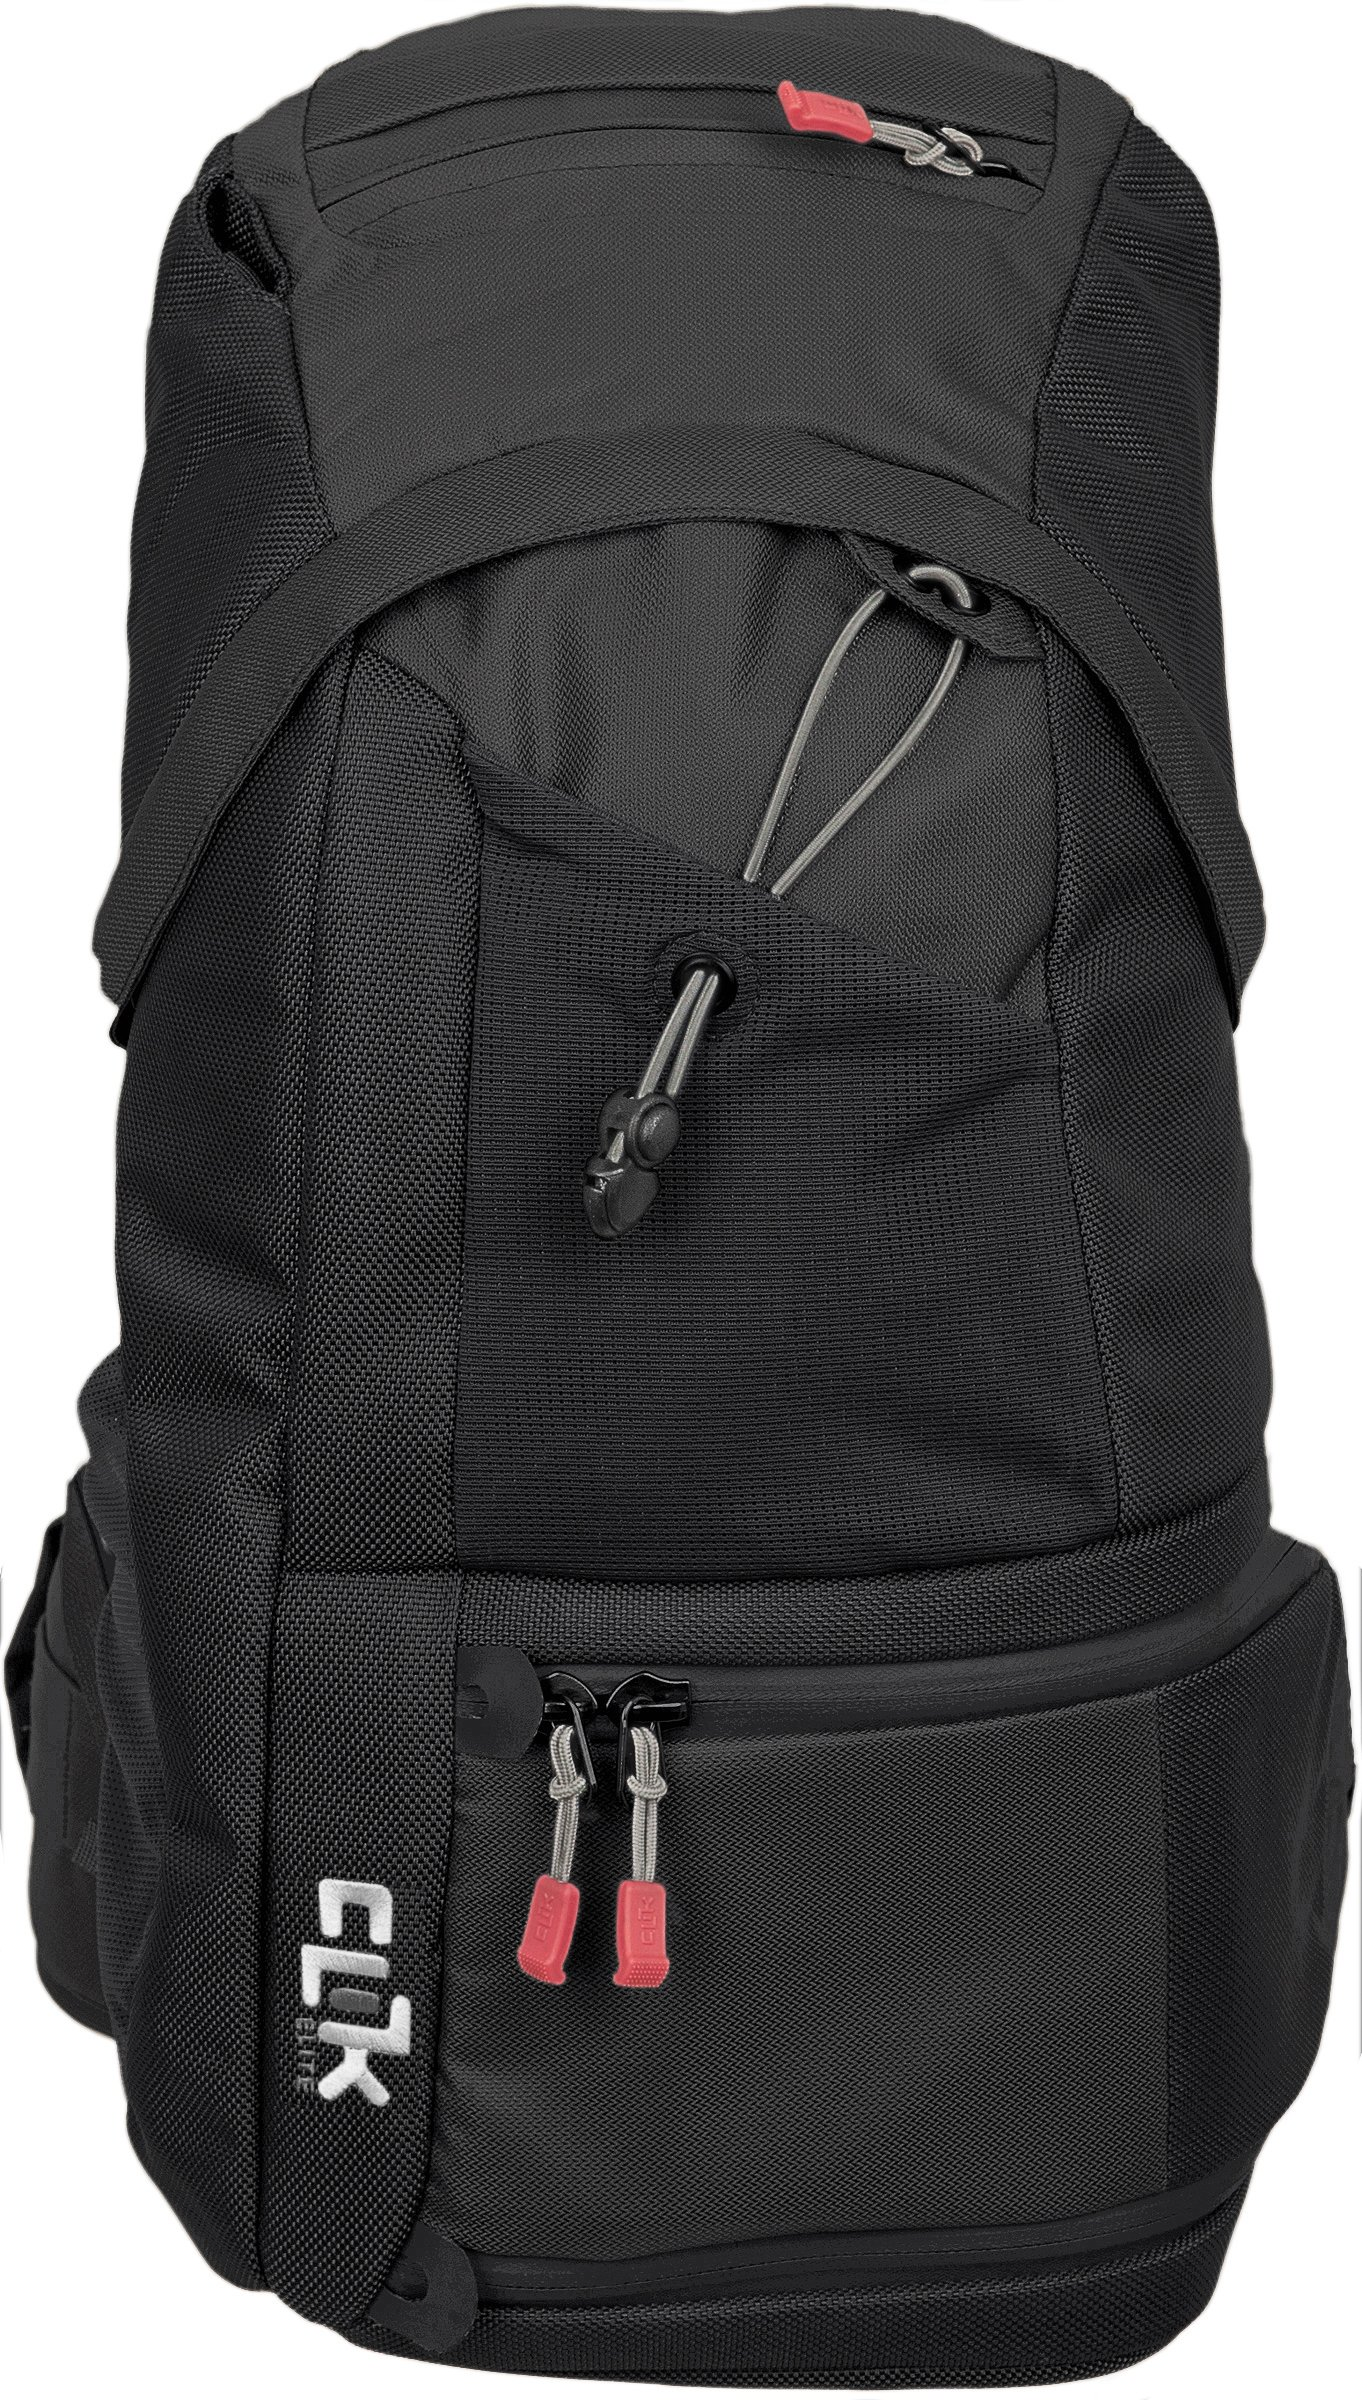 Clik Elite CE706BK Compact, Sport Black by Clik Elite